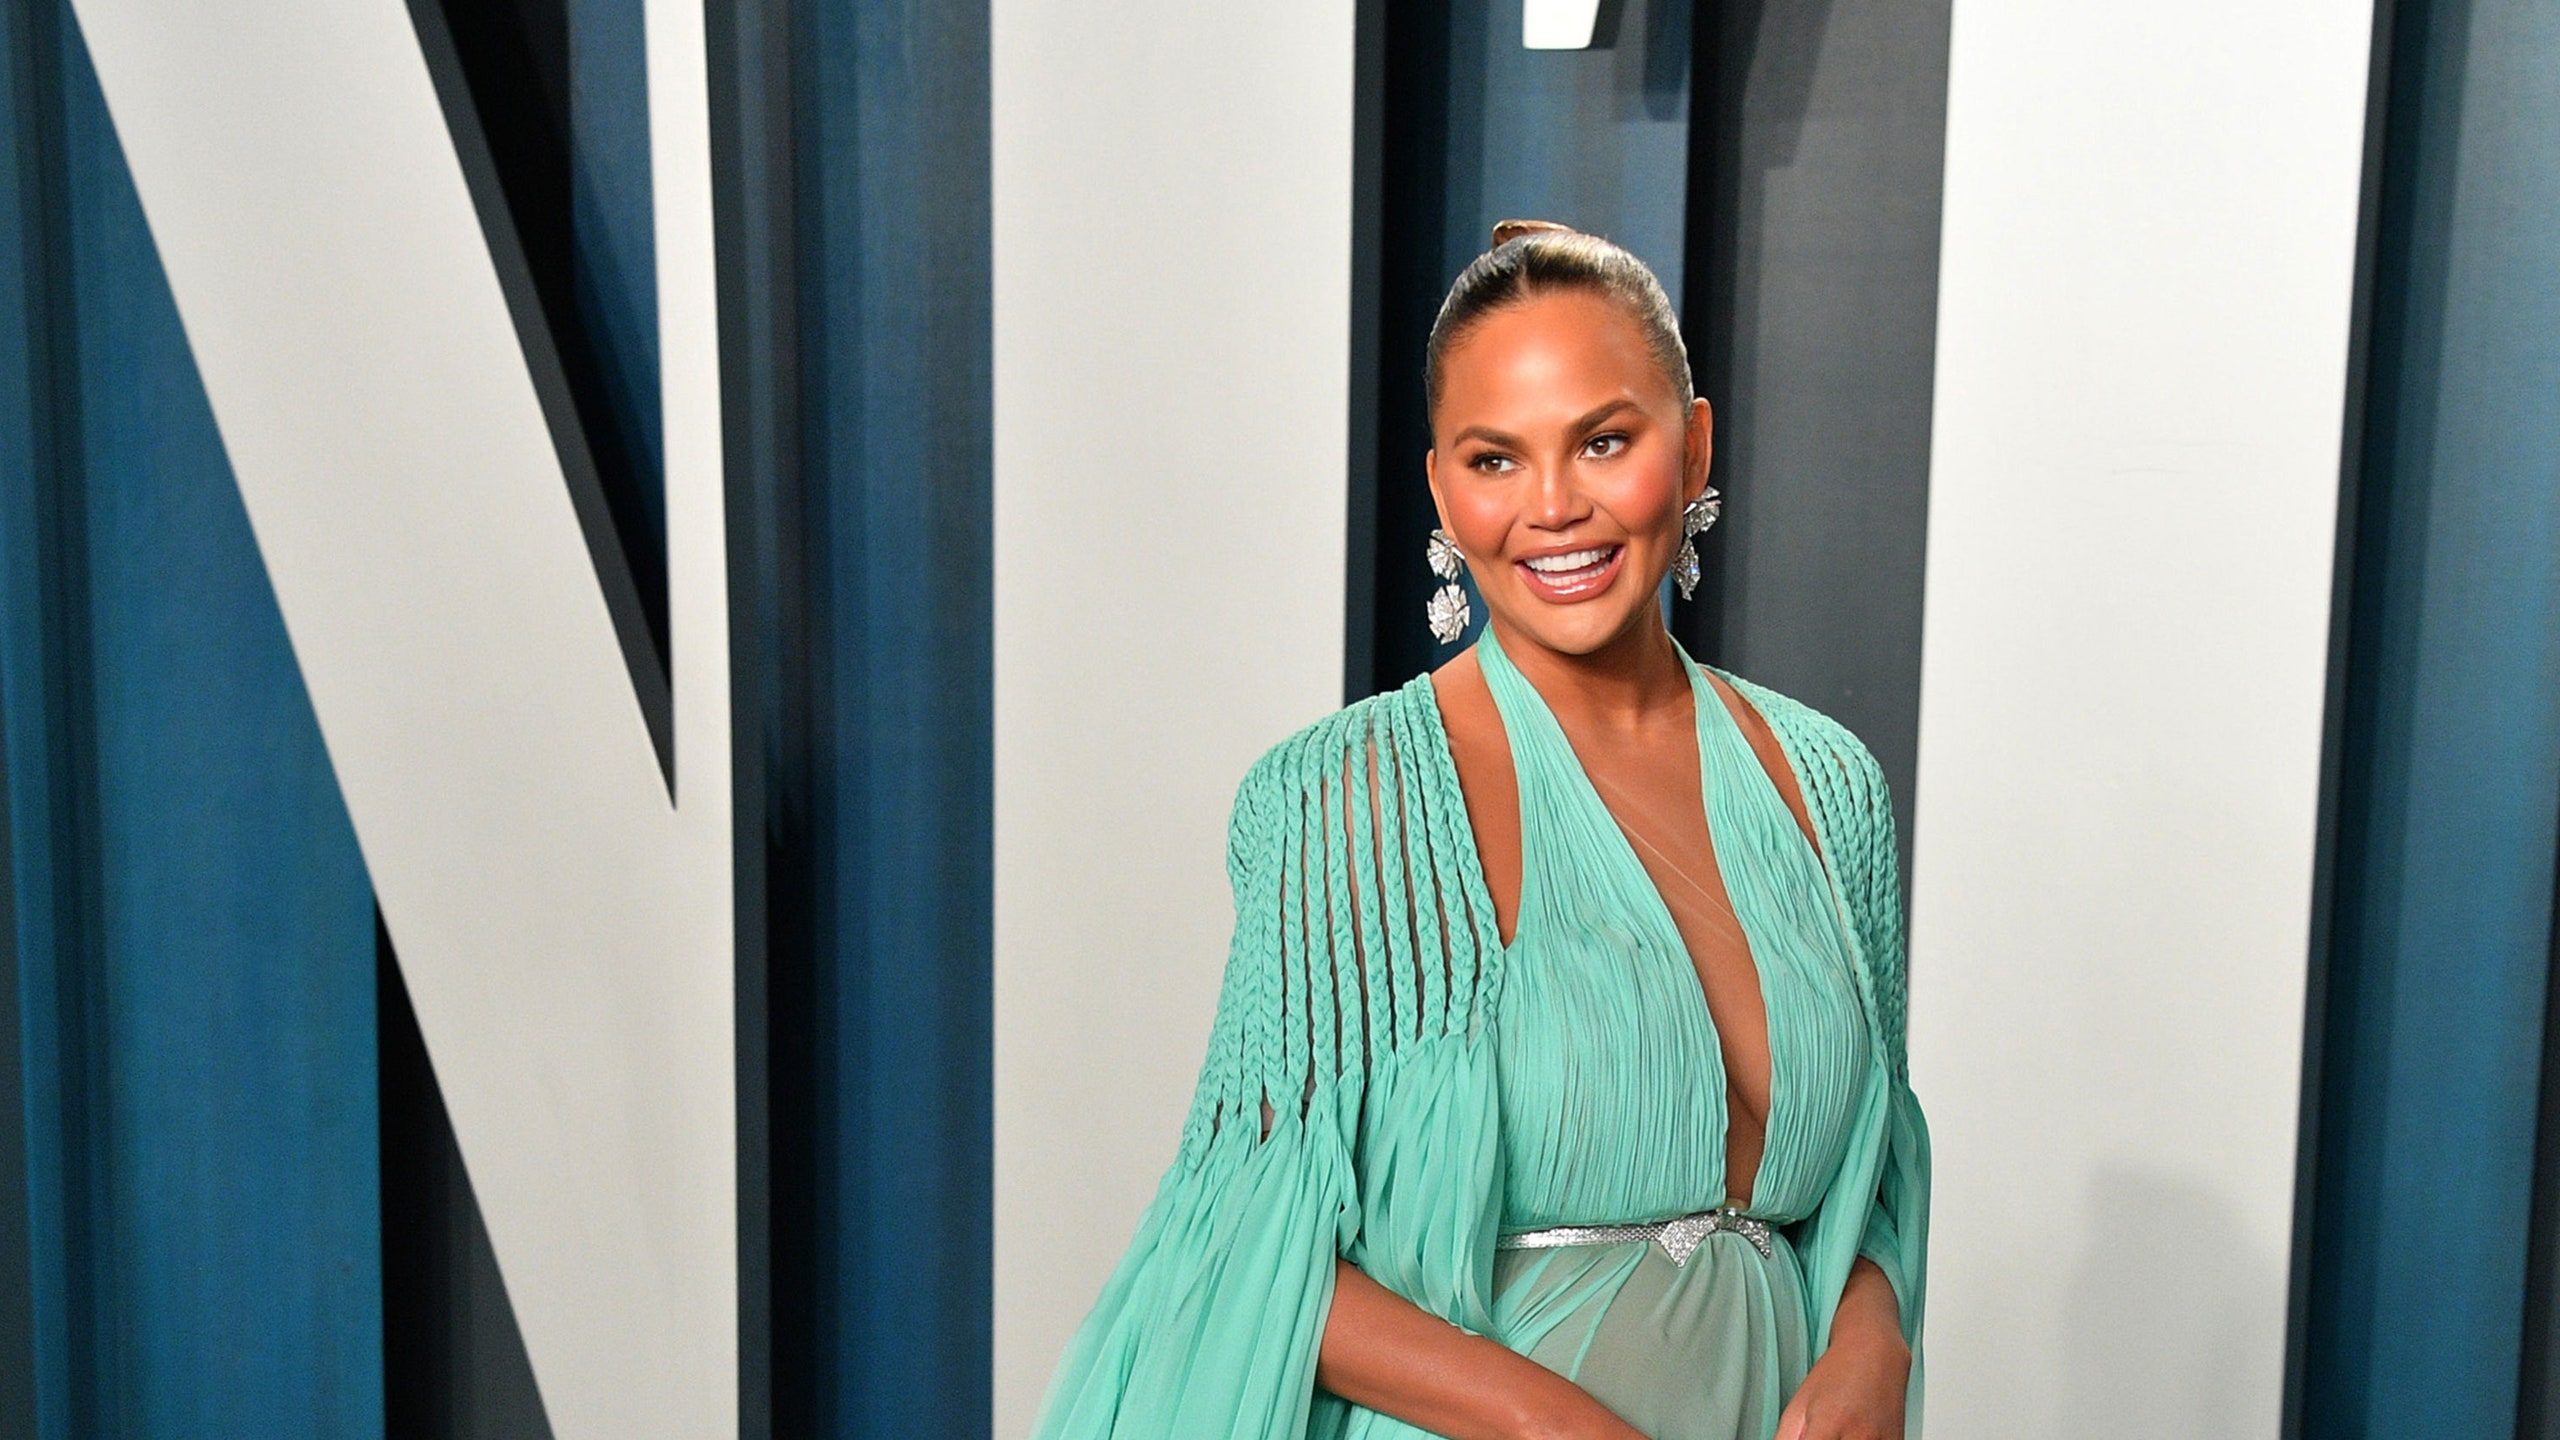 'Worried for my family': Chrissy Teigen blocks 1M Twitter accounts linking her to Jeffrey Epstein